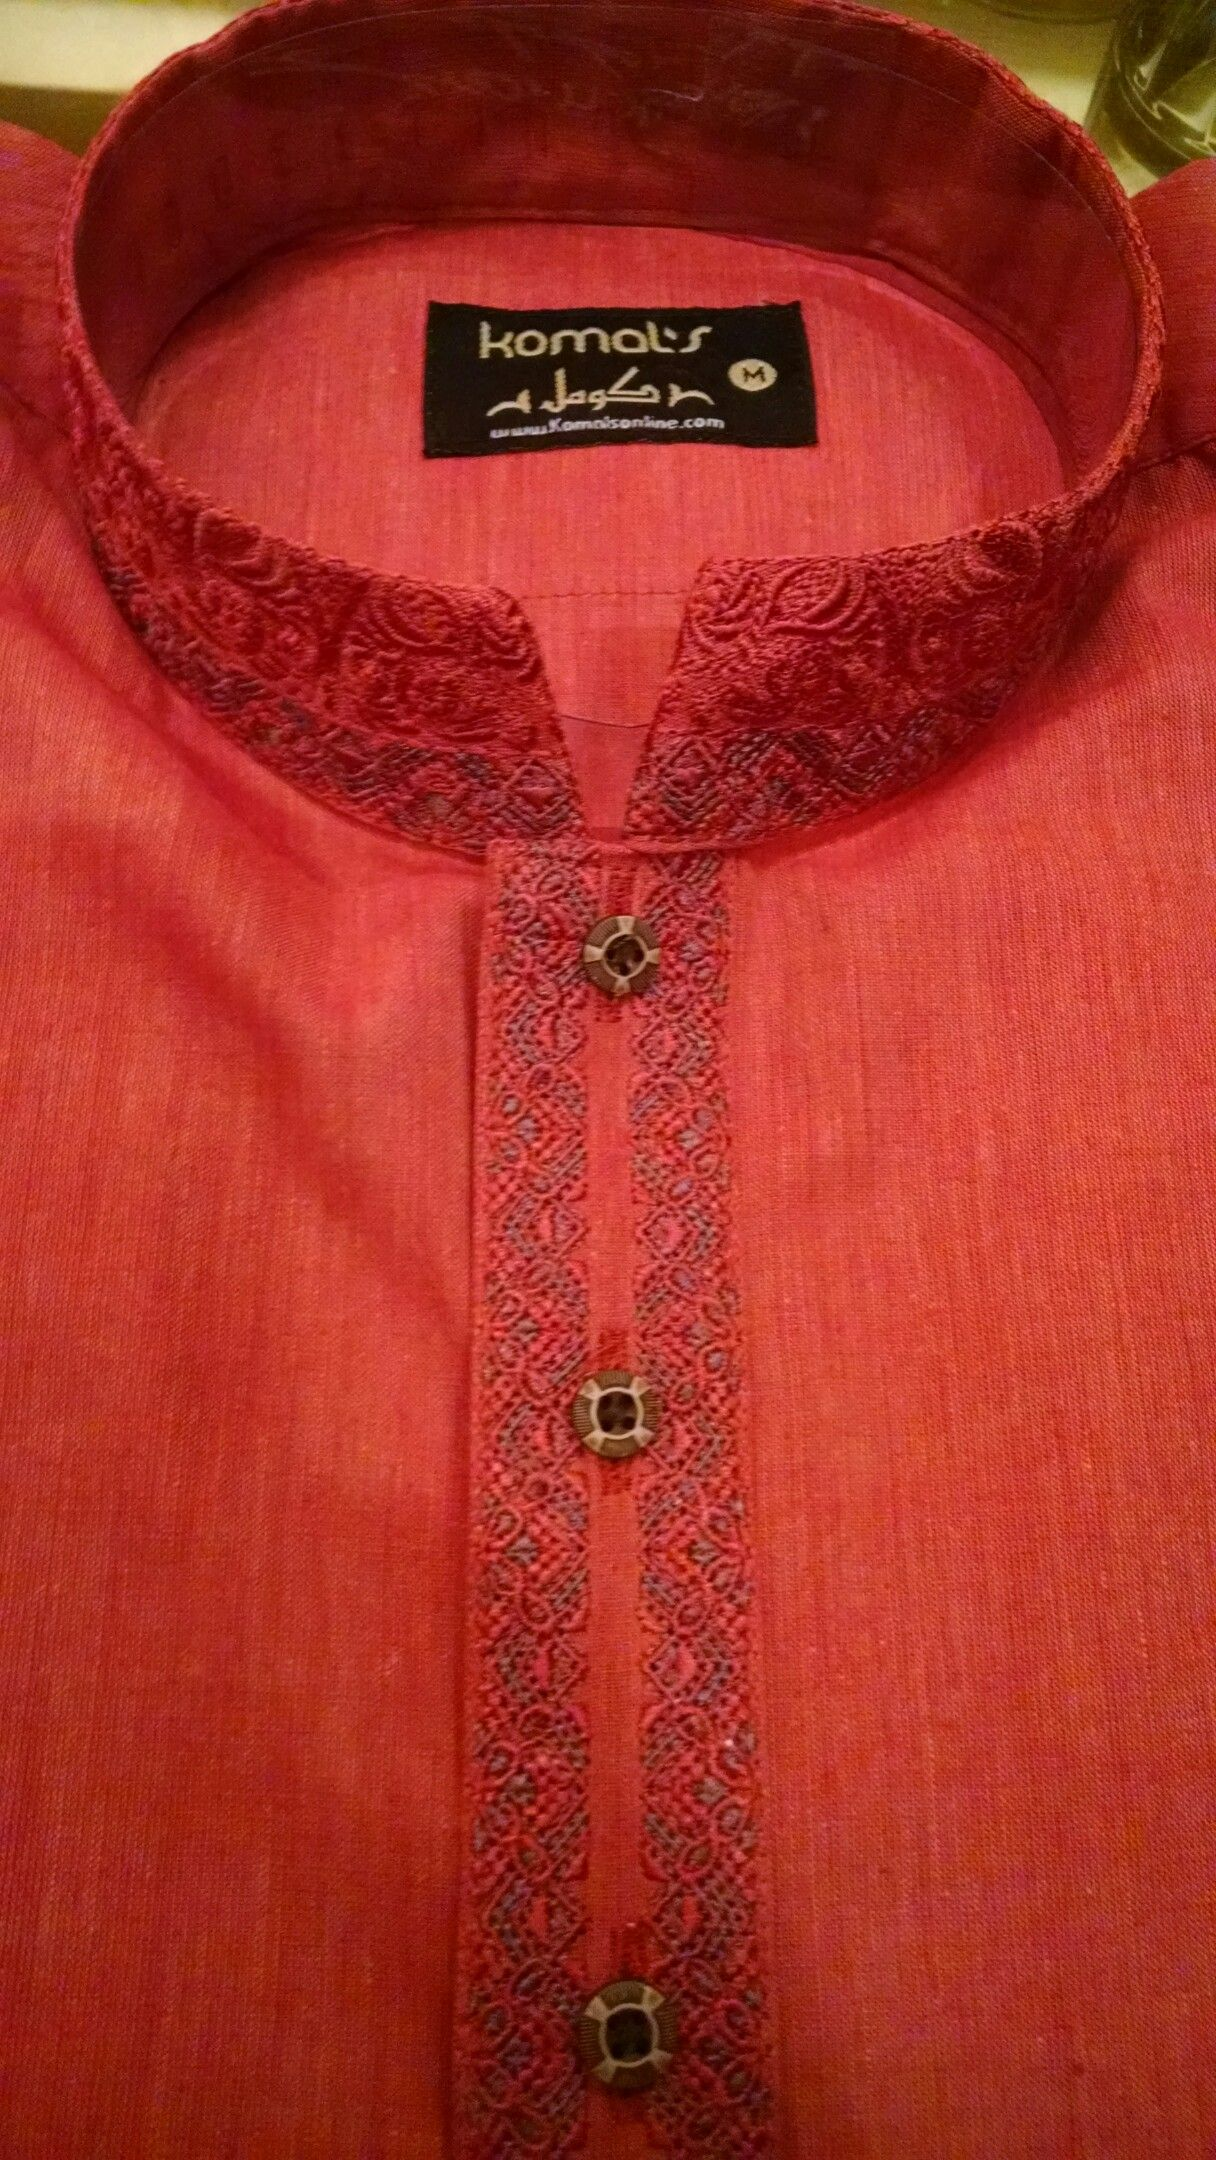 055768315c Men's kurta in khaddar material In 6 different colors and sizes ...